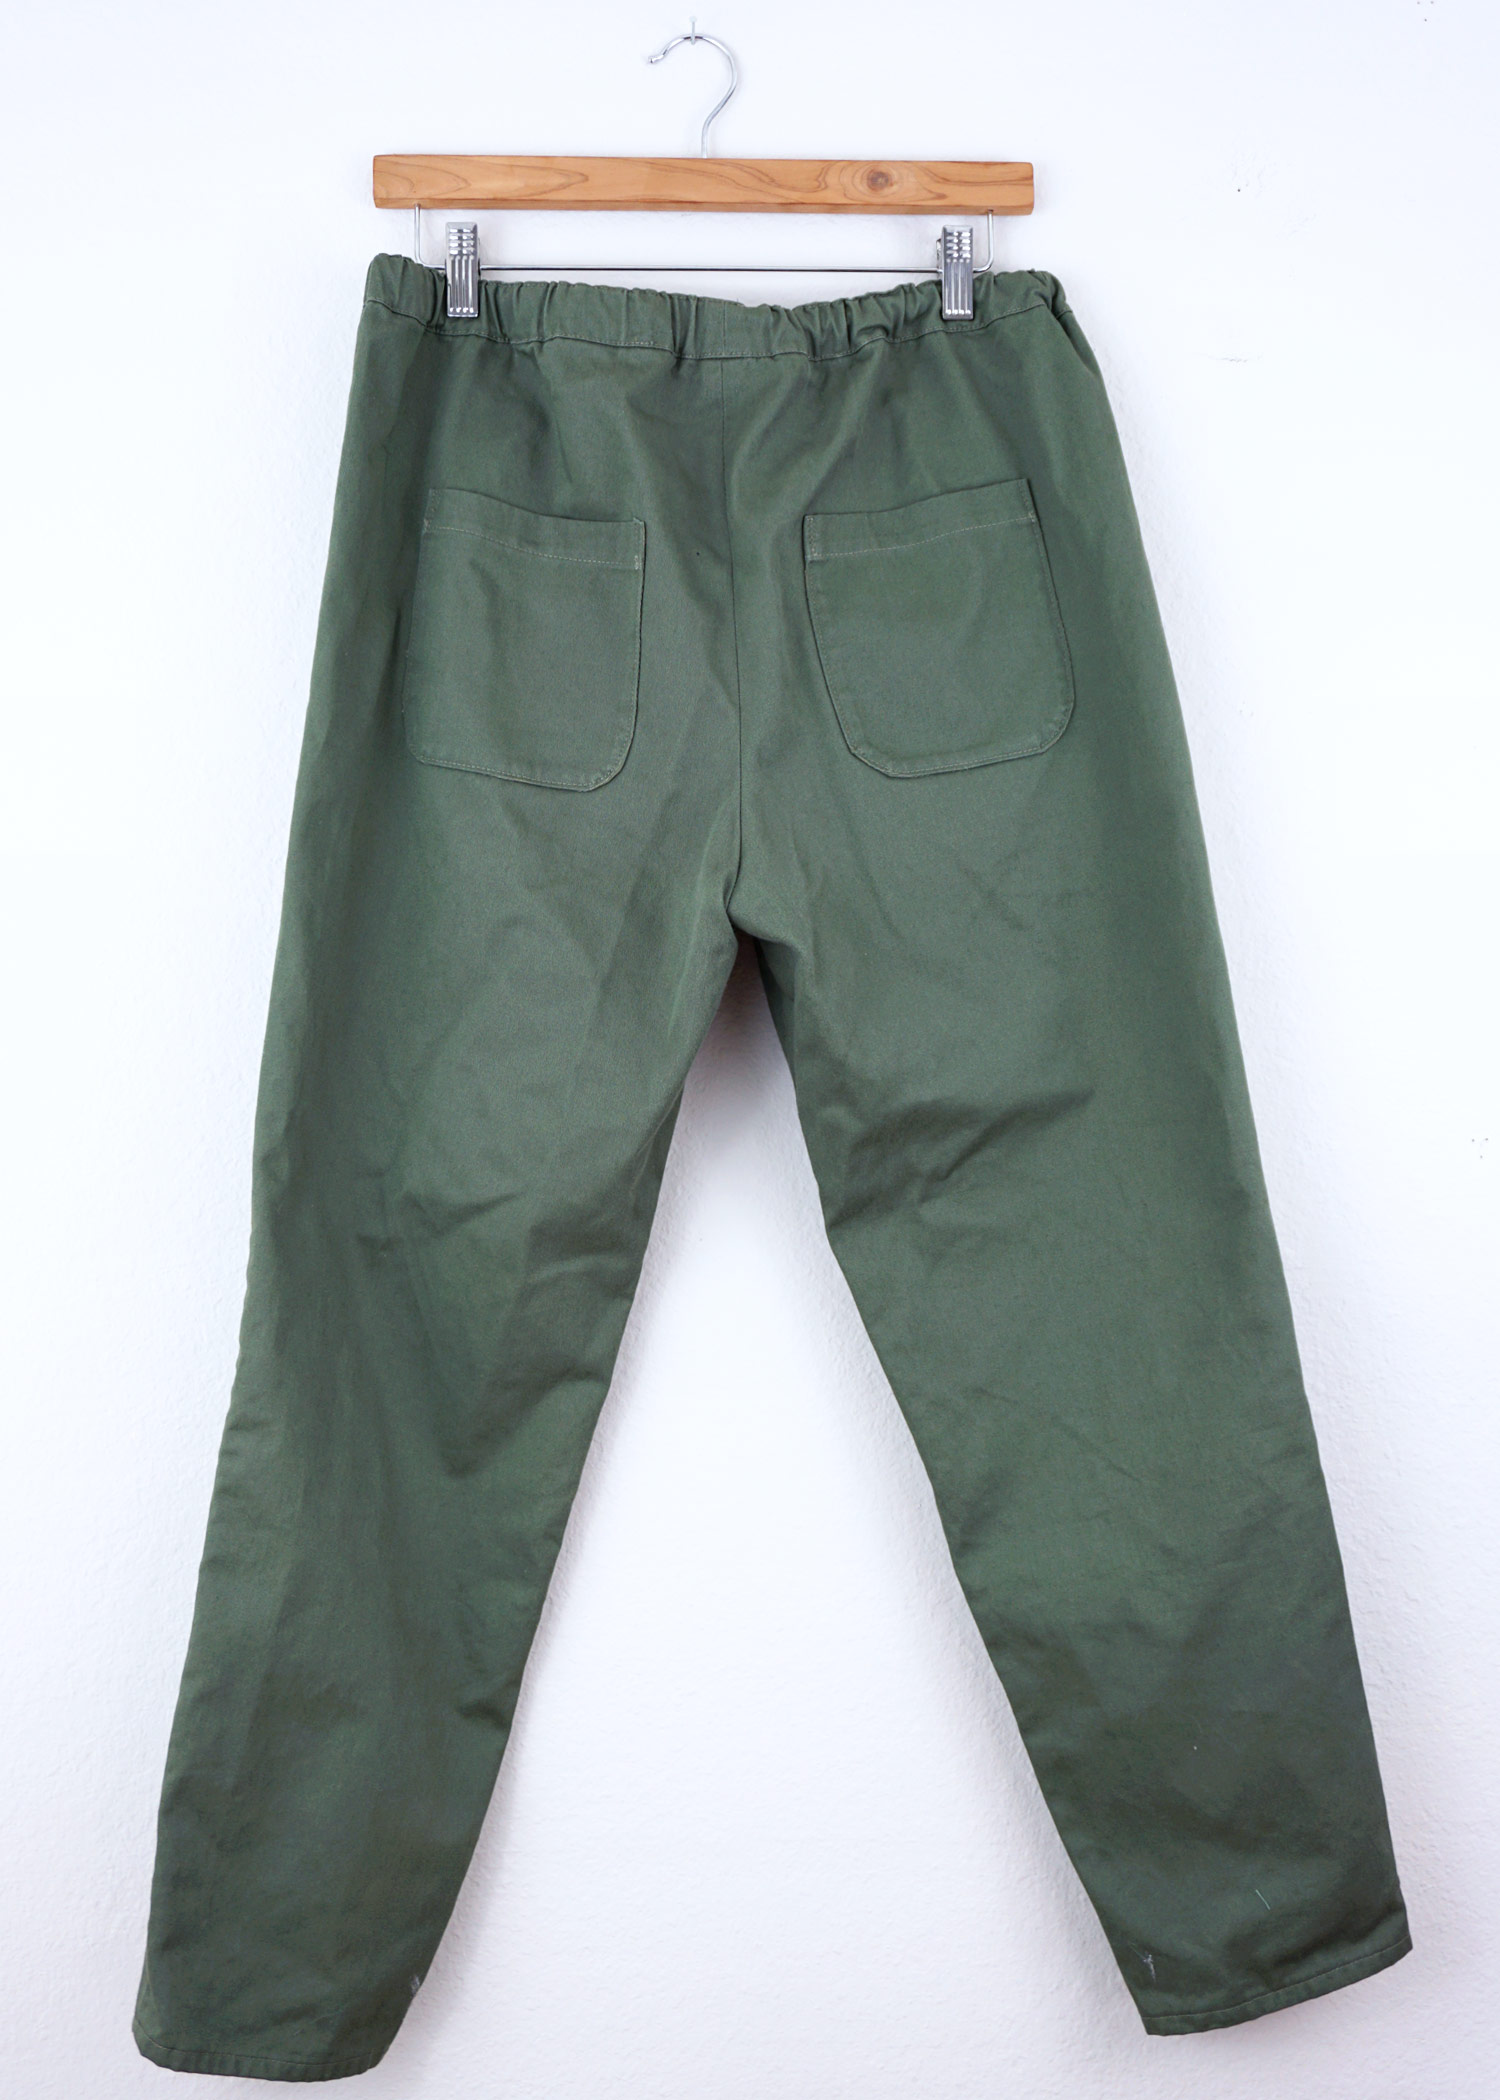 DIY Green Peg Trousers, a review of the Alexandria Trousers pattern by Named Clothing   Sew DIY